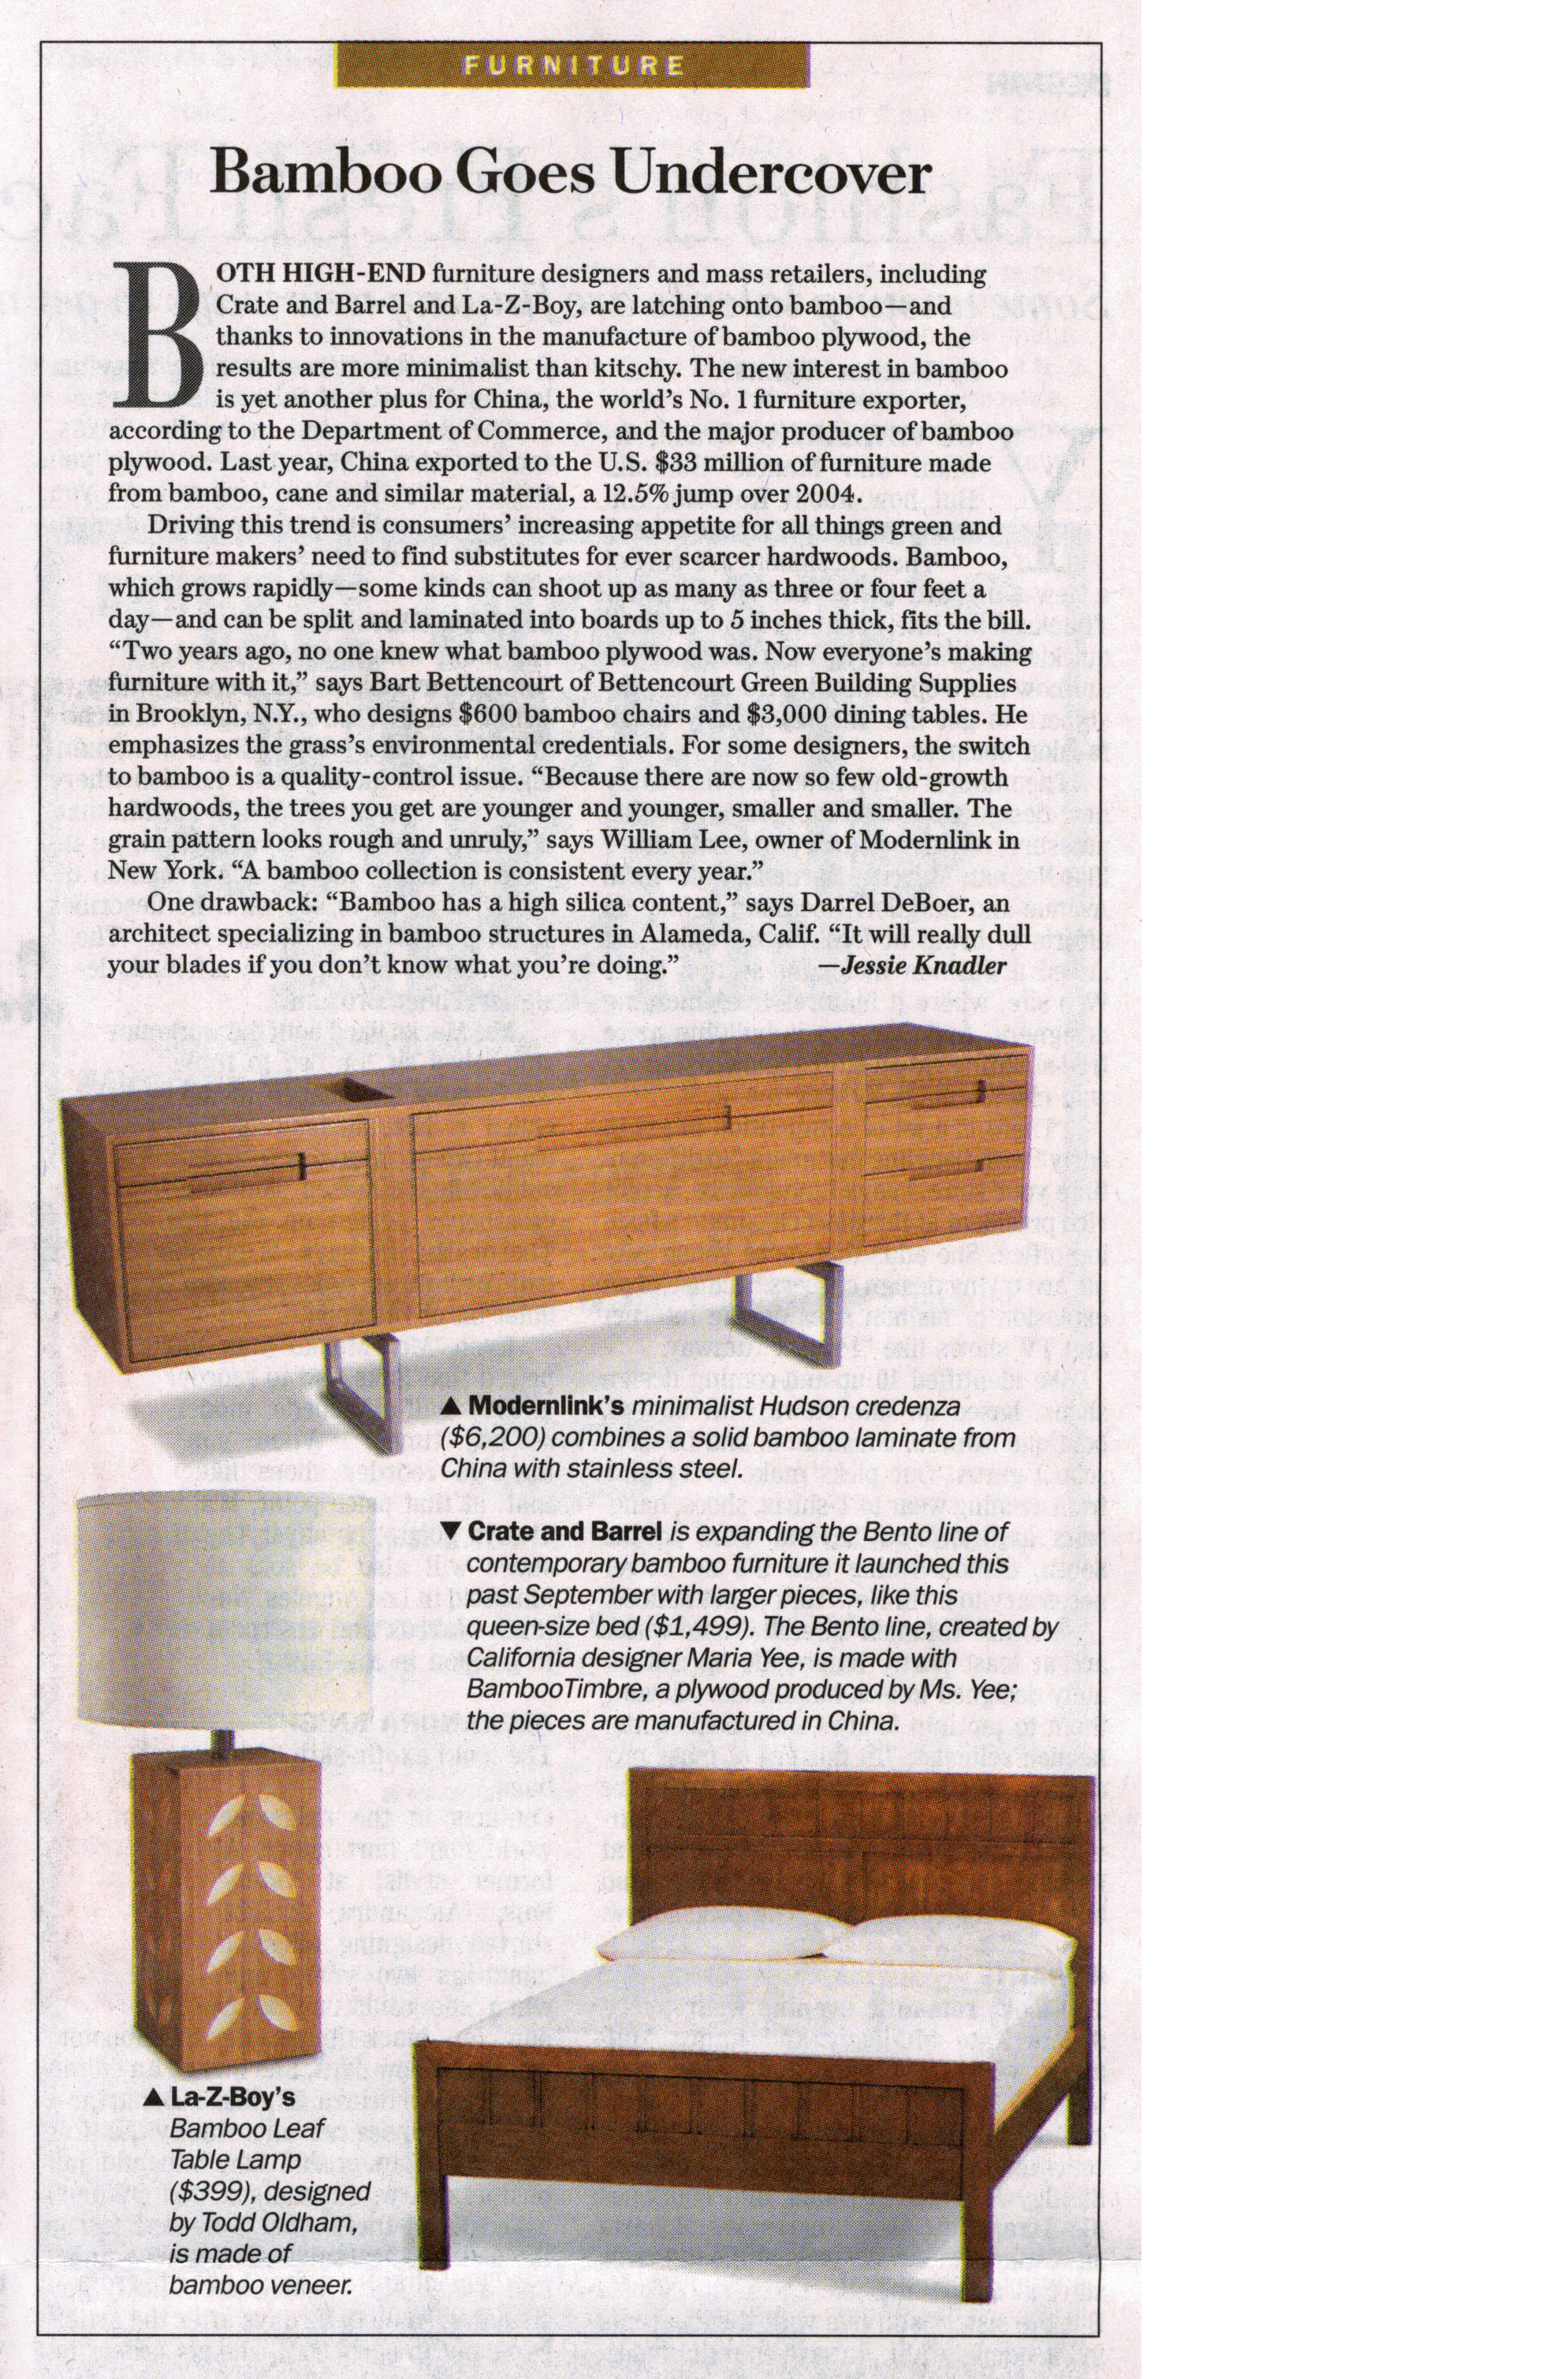 """Modernlink's Onelink Collection designed by Piet Houtenbos highlighted in an article titled, """"Bamboo Goes Undercover"""" by Jessie Knadler for the Wall Street Journal."""